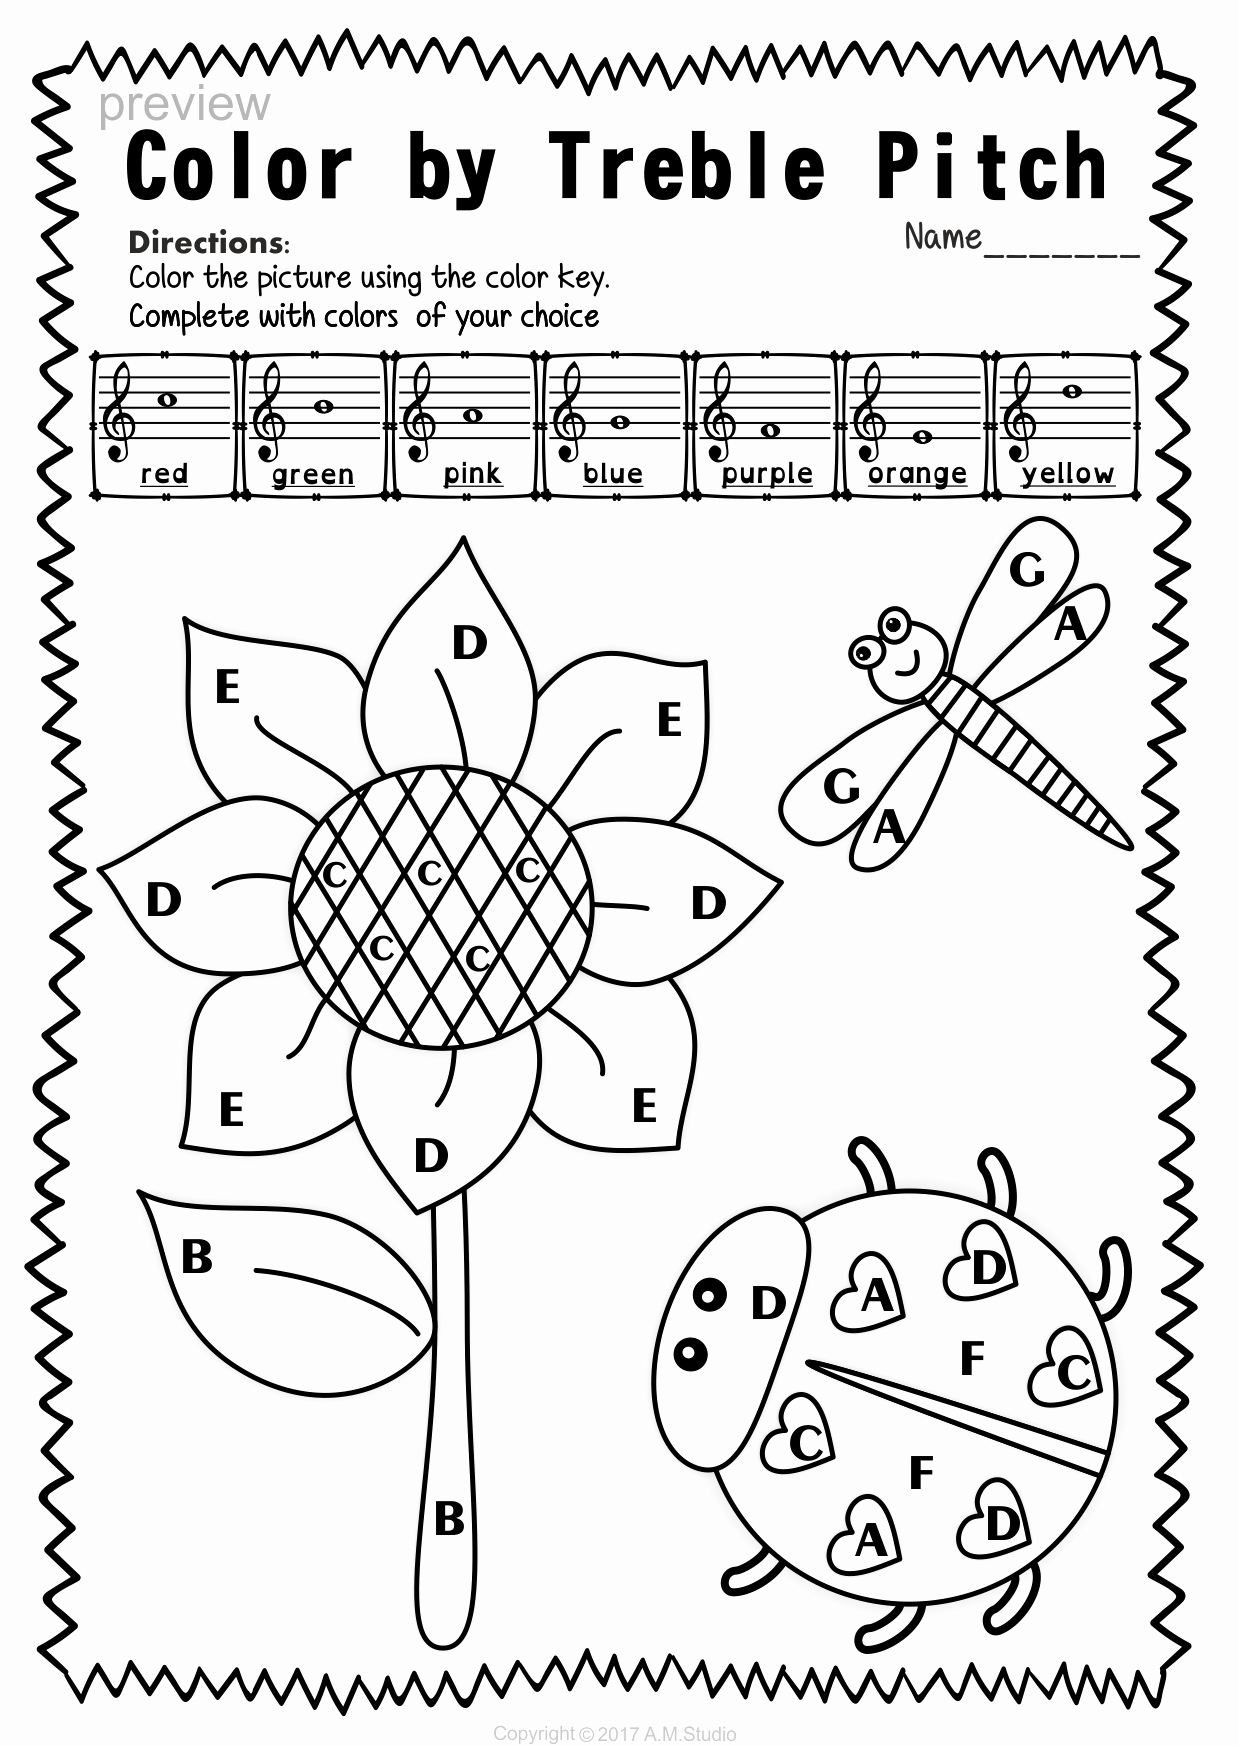 Treble Clef Note Worksheet Beautiful Treble Clef Note Naming Worksheets for Spring9